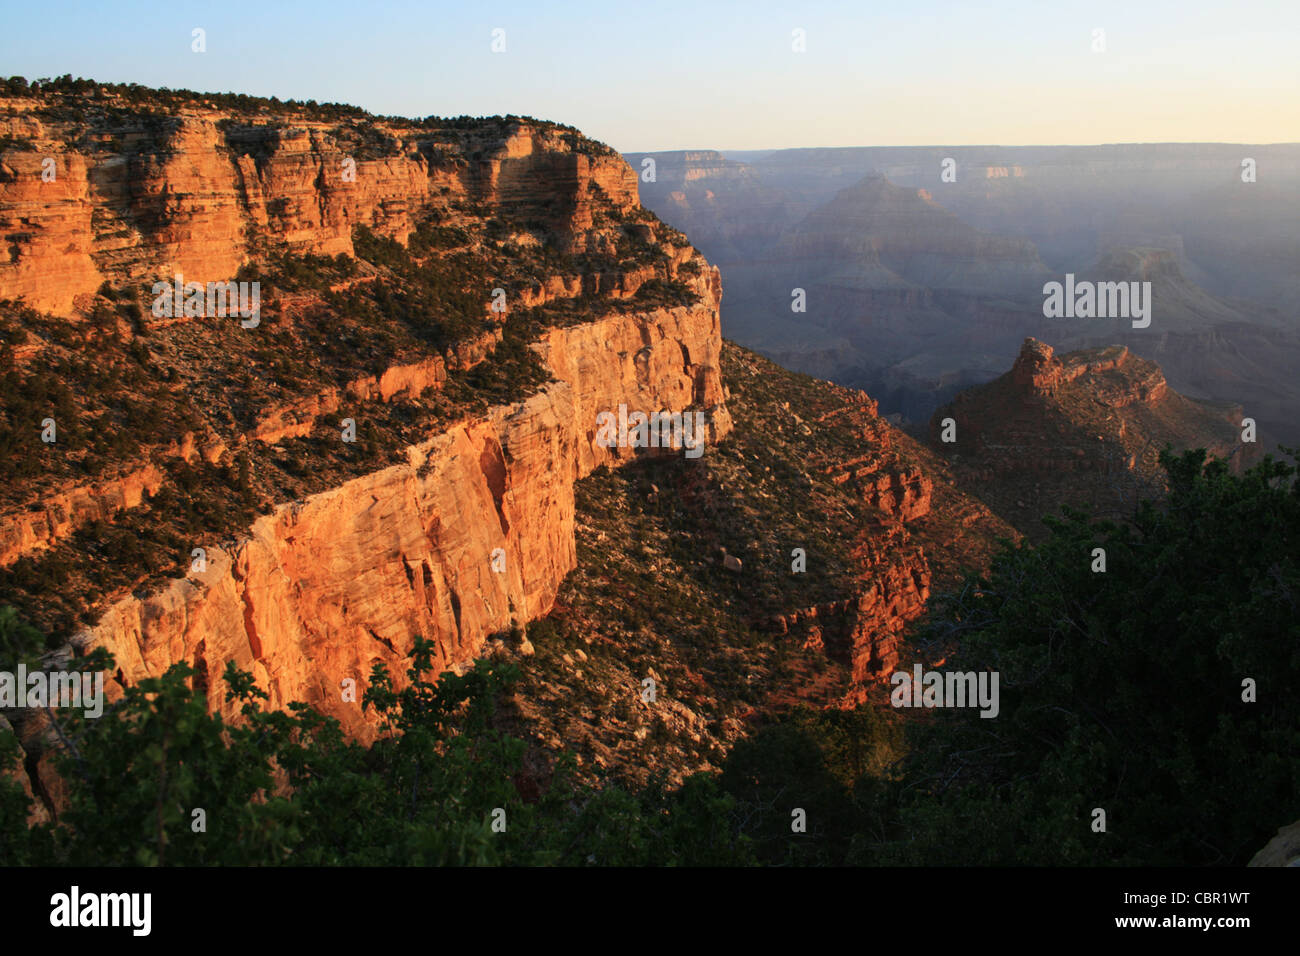 view of morning light on the Kaibab and Coconino formations from the Bright Angel Trail in the Grand Canyon - Stock Image